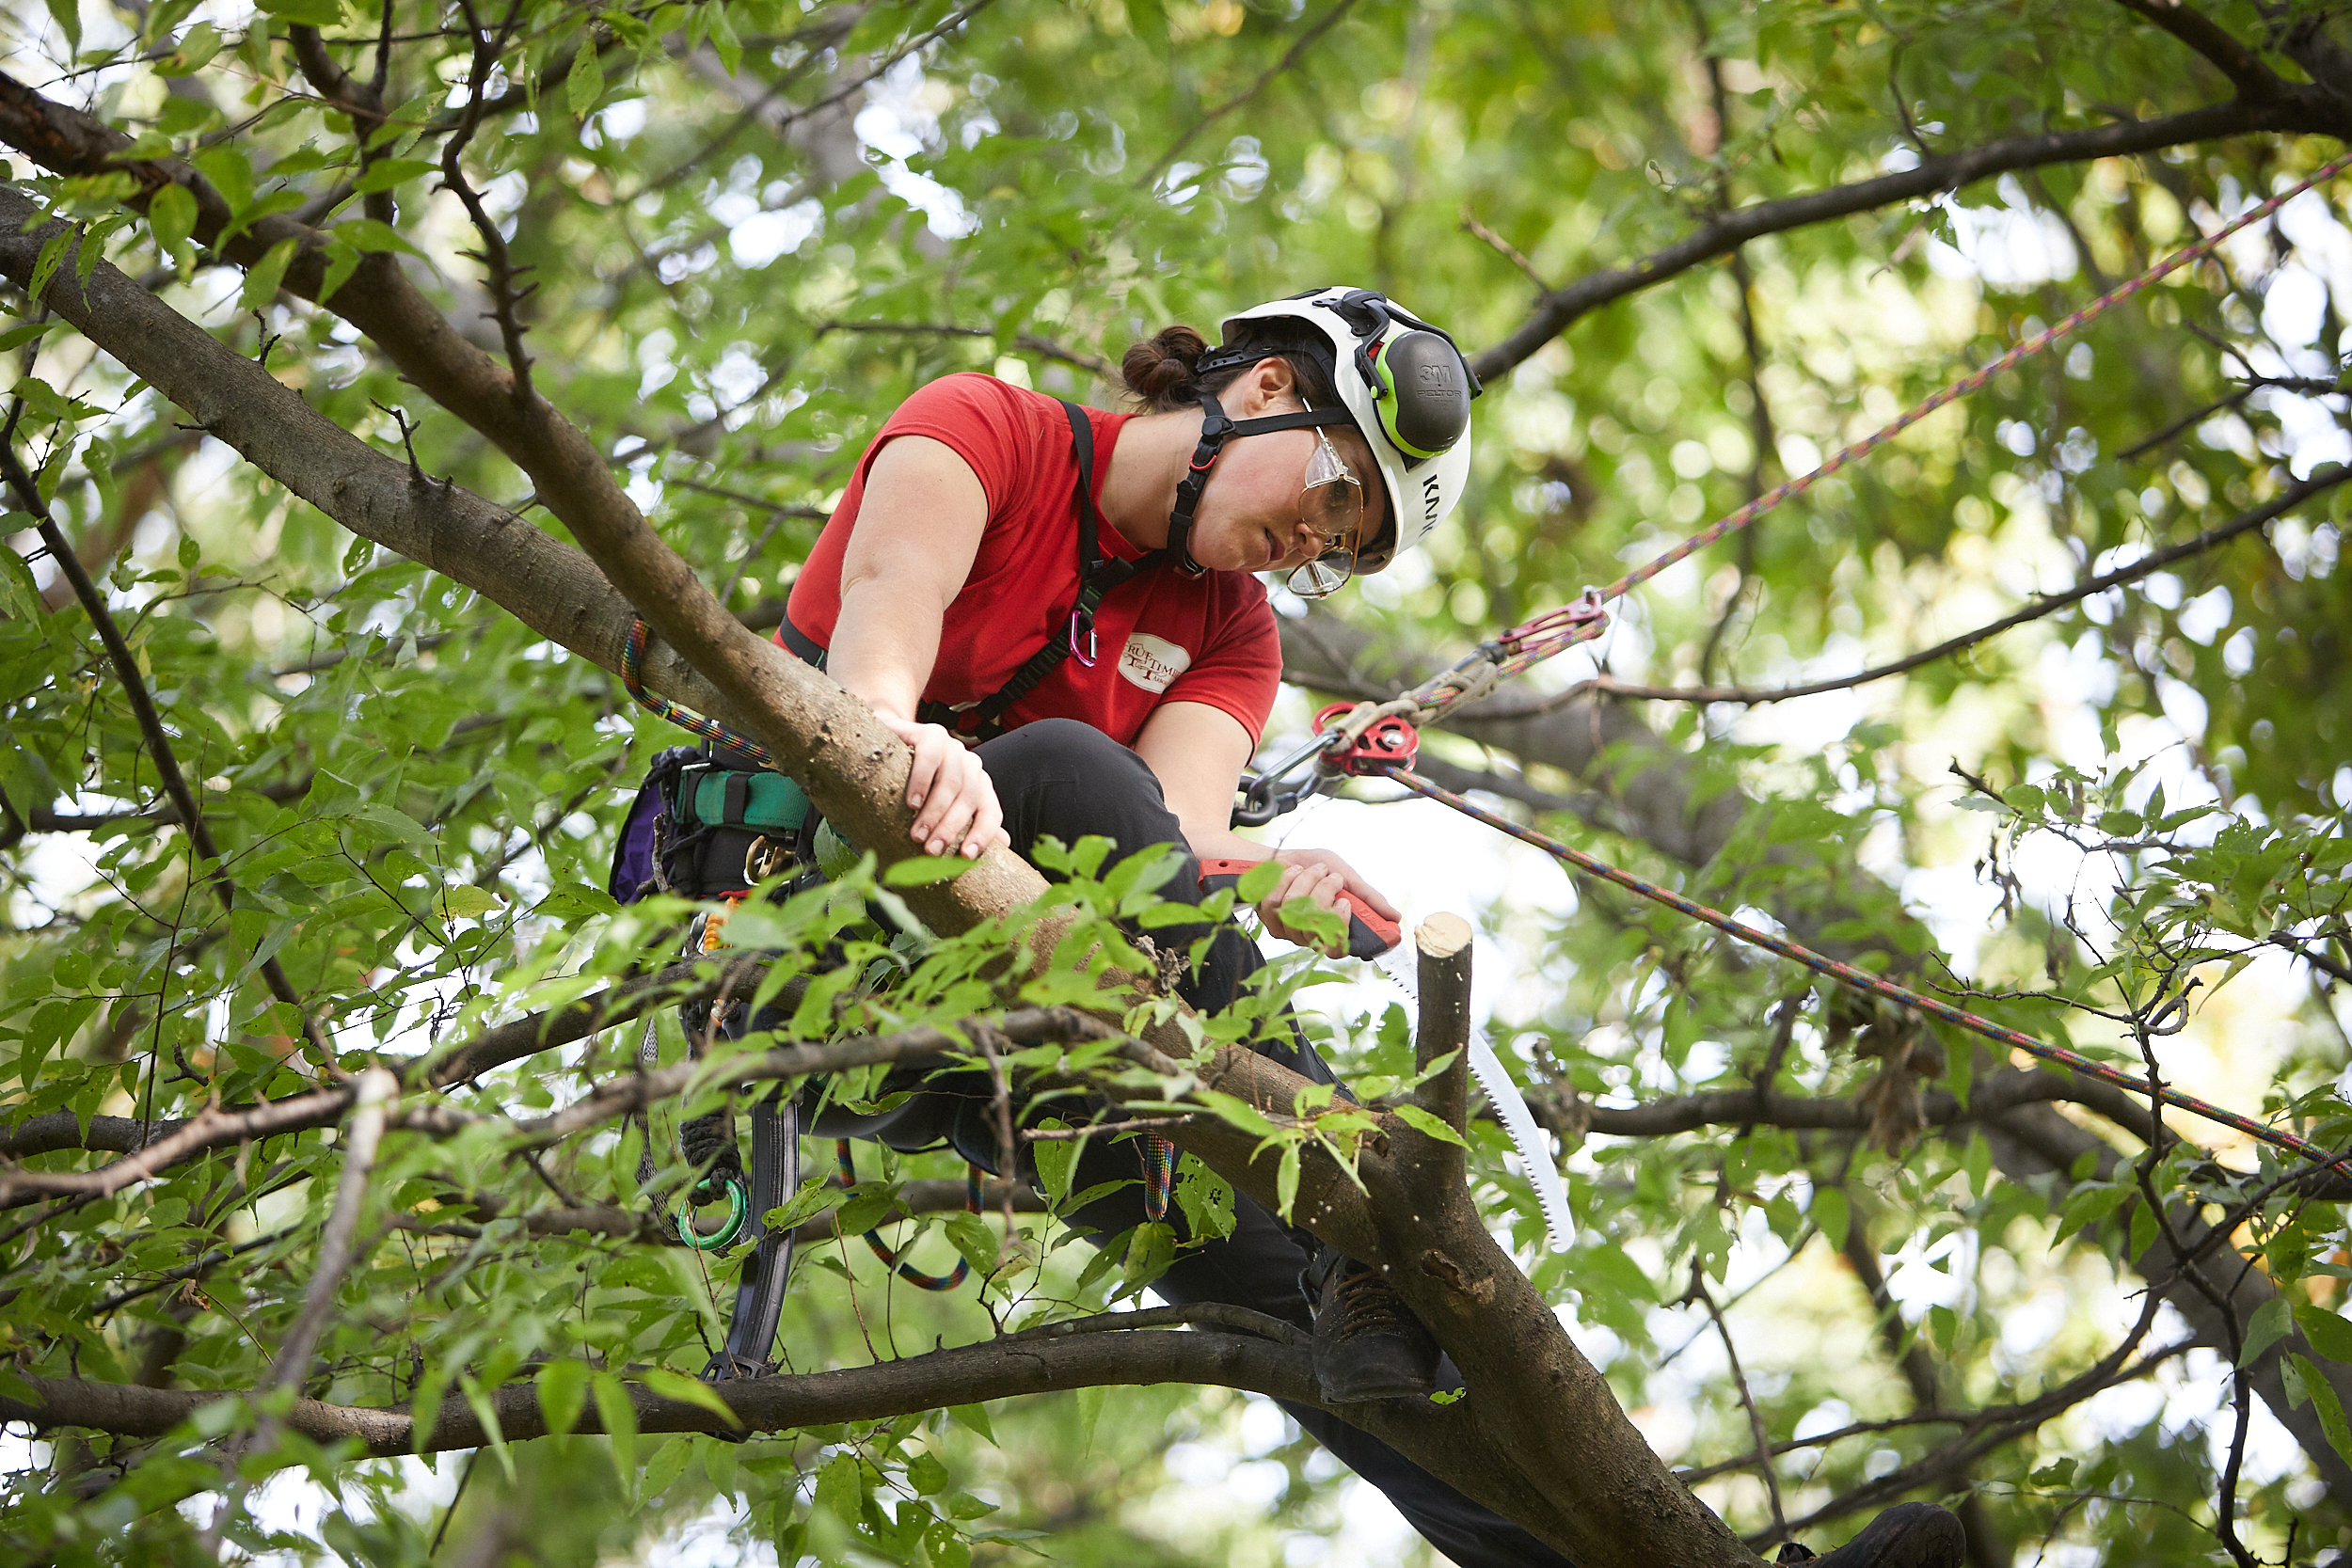 Pruning: How to Understand an Arborist